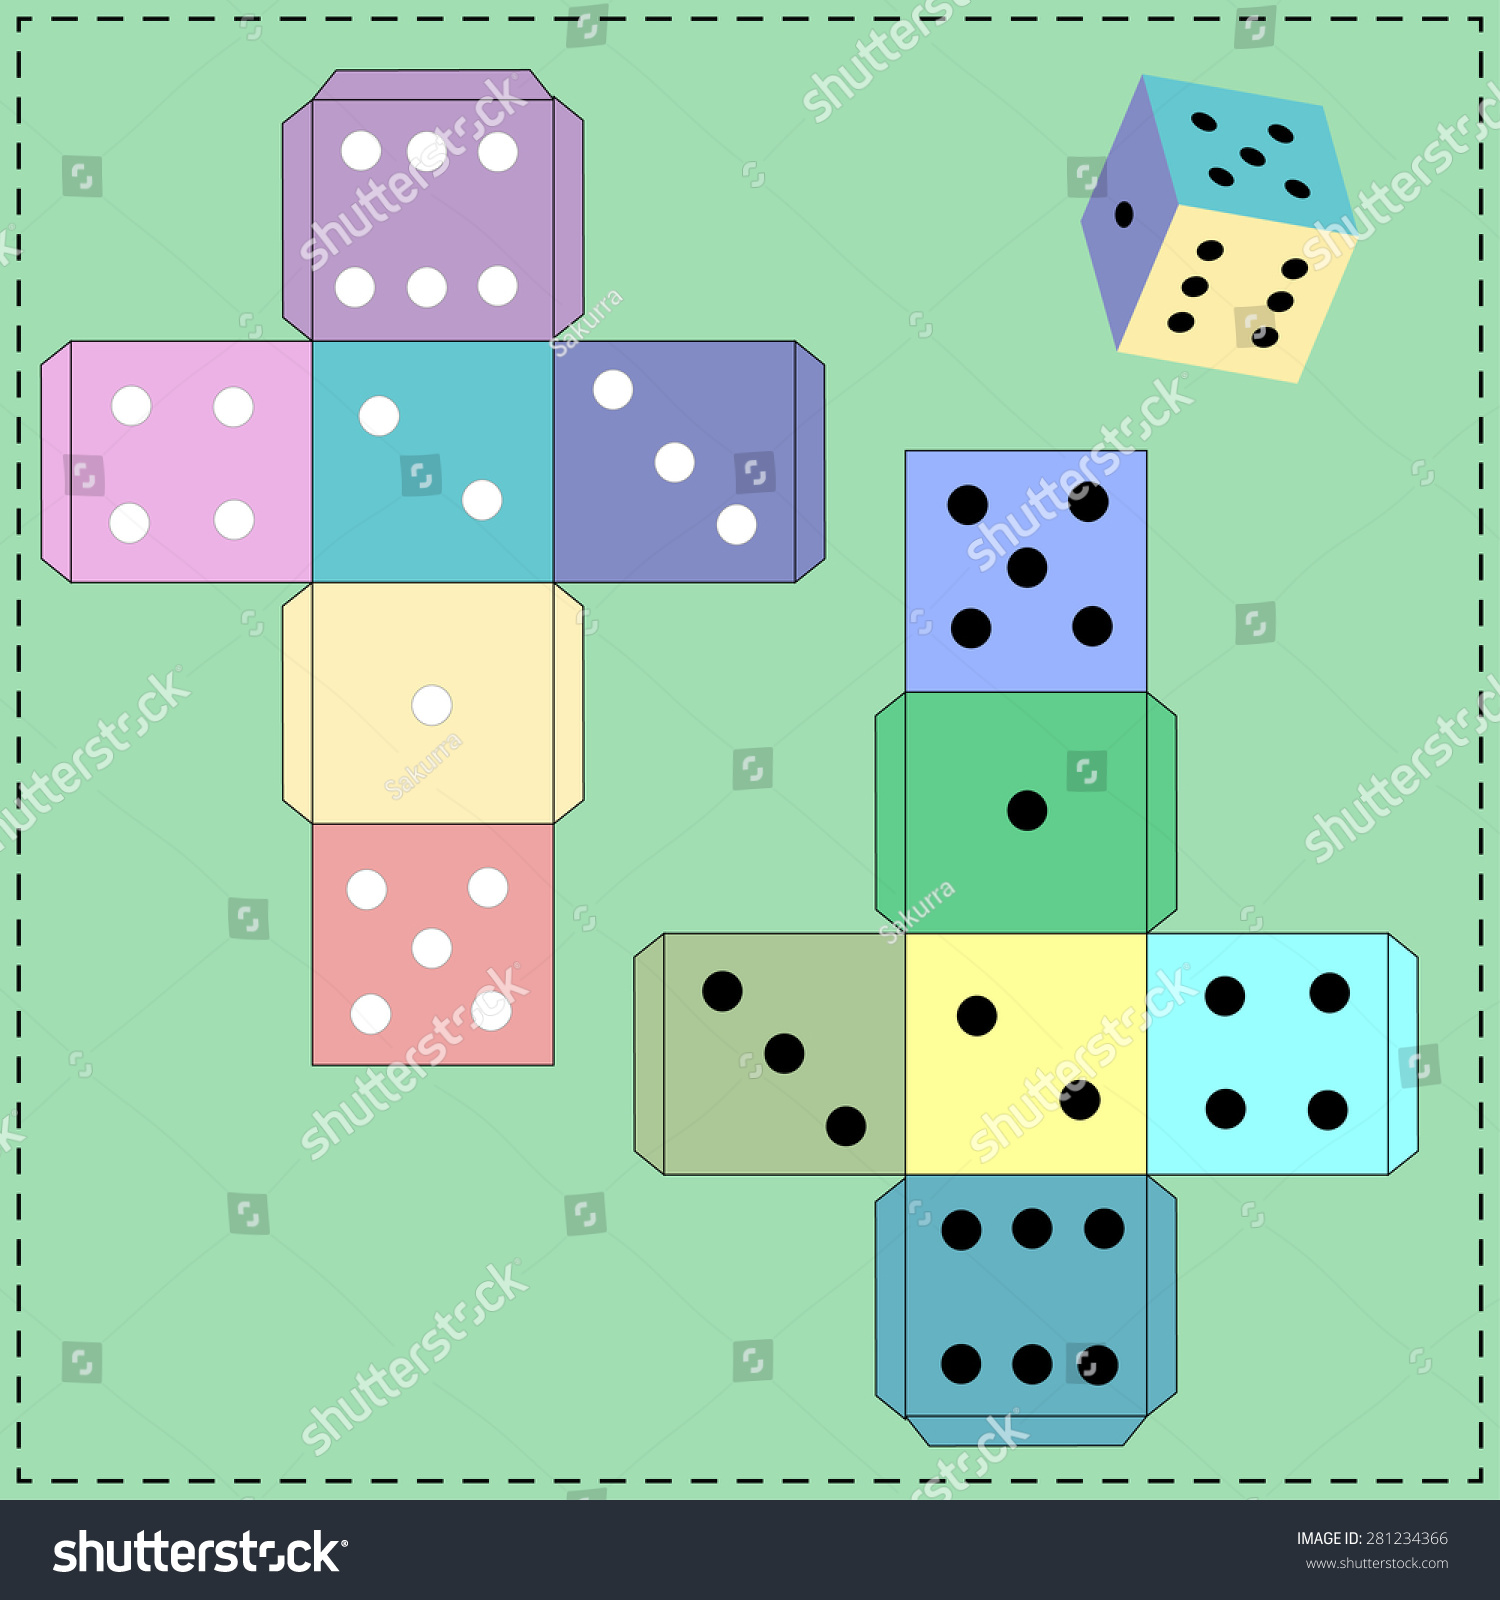 Dice games paper dice template vector stock vector 281234366 dice for games paper dice template vector maxwellsz